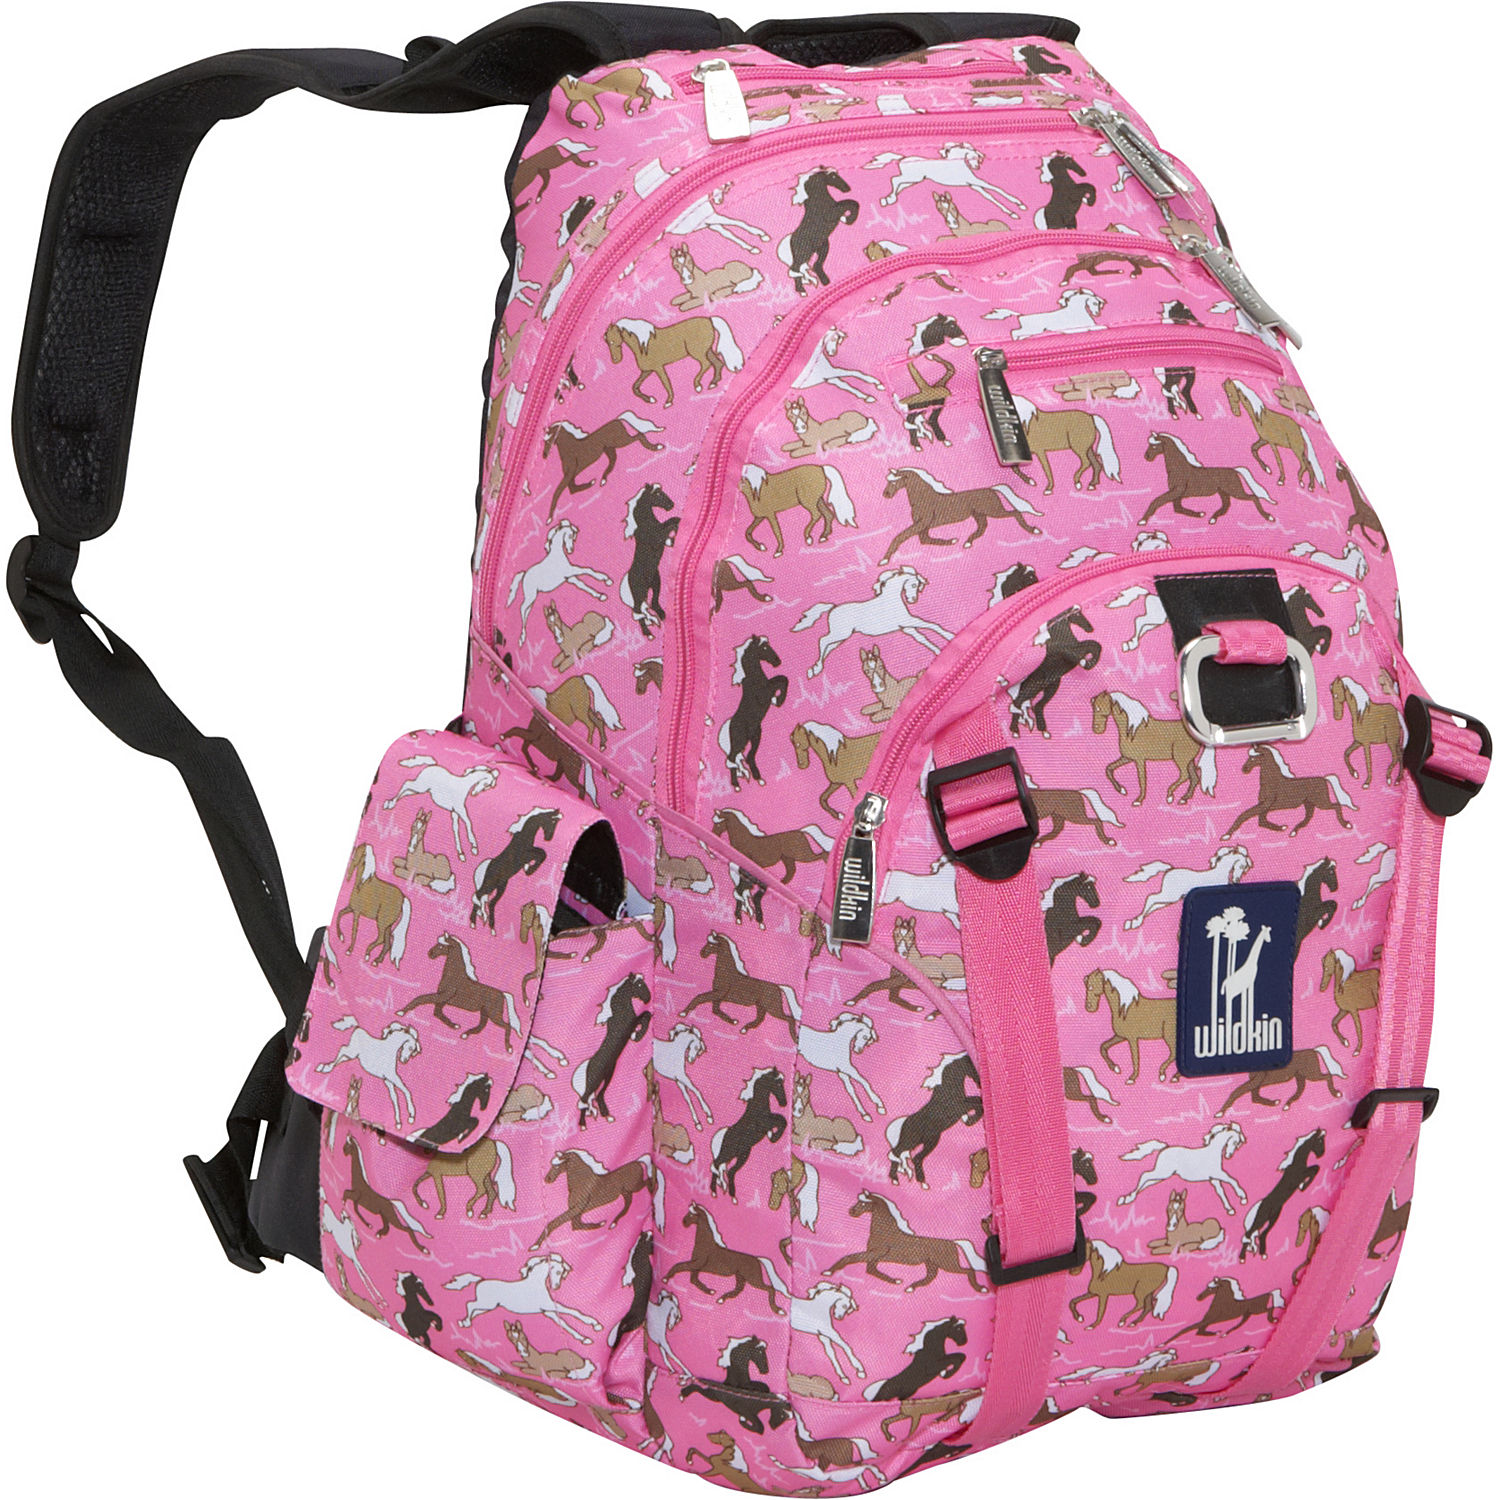 horse backpack for girls Backpack Tools